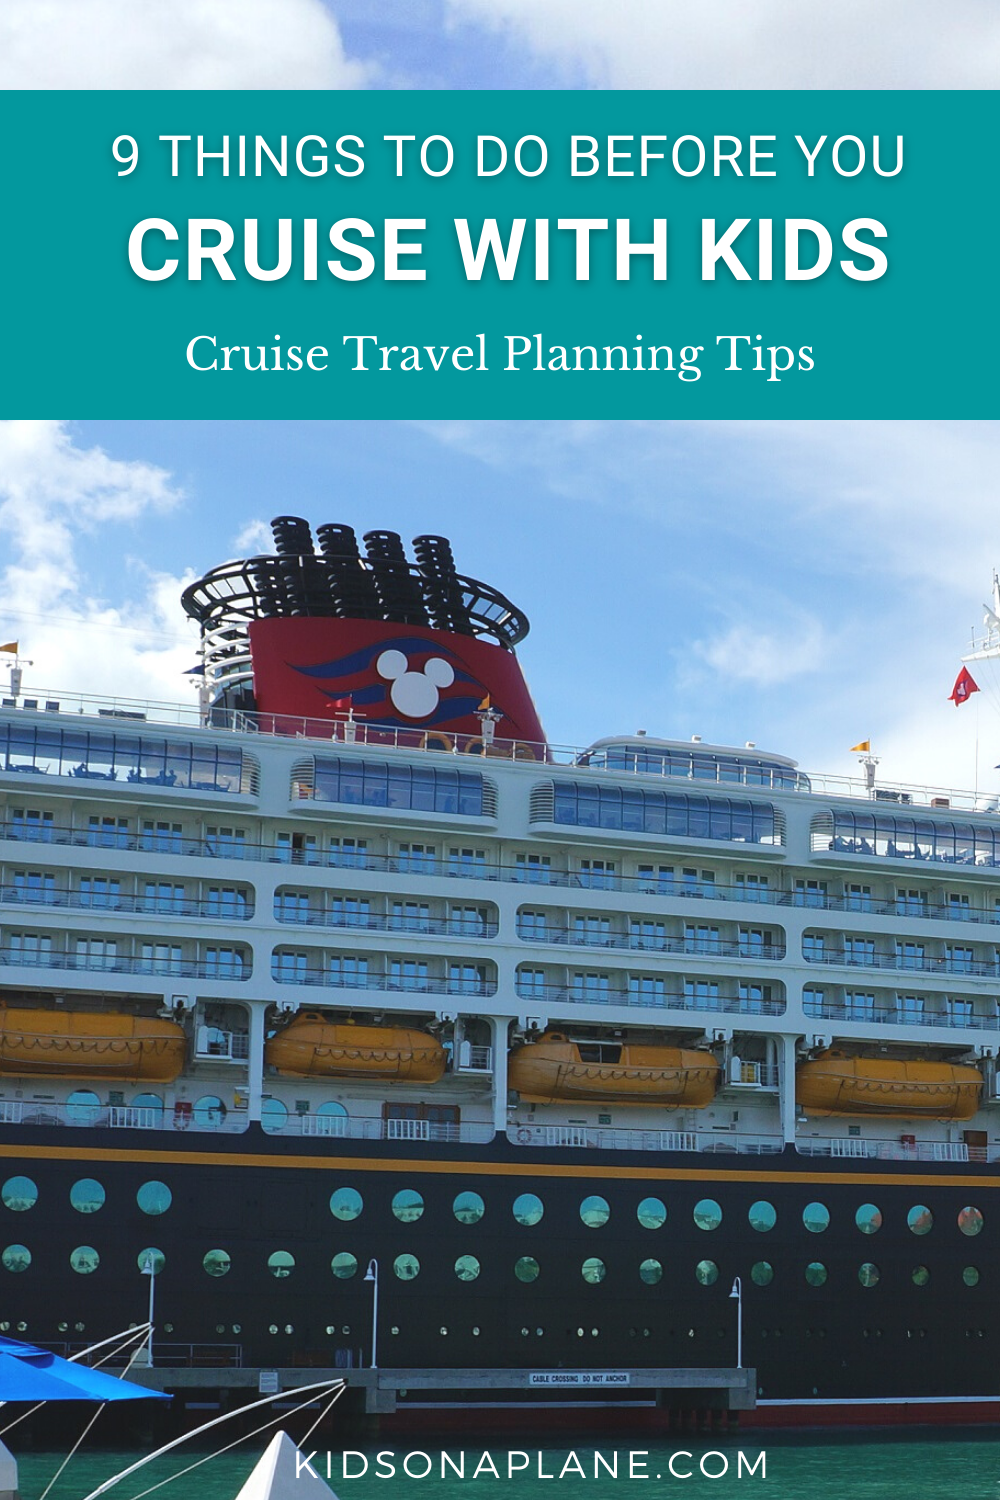 9 Things to Do Before You Cruise with Kids - Things to make sure you do before you set sail